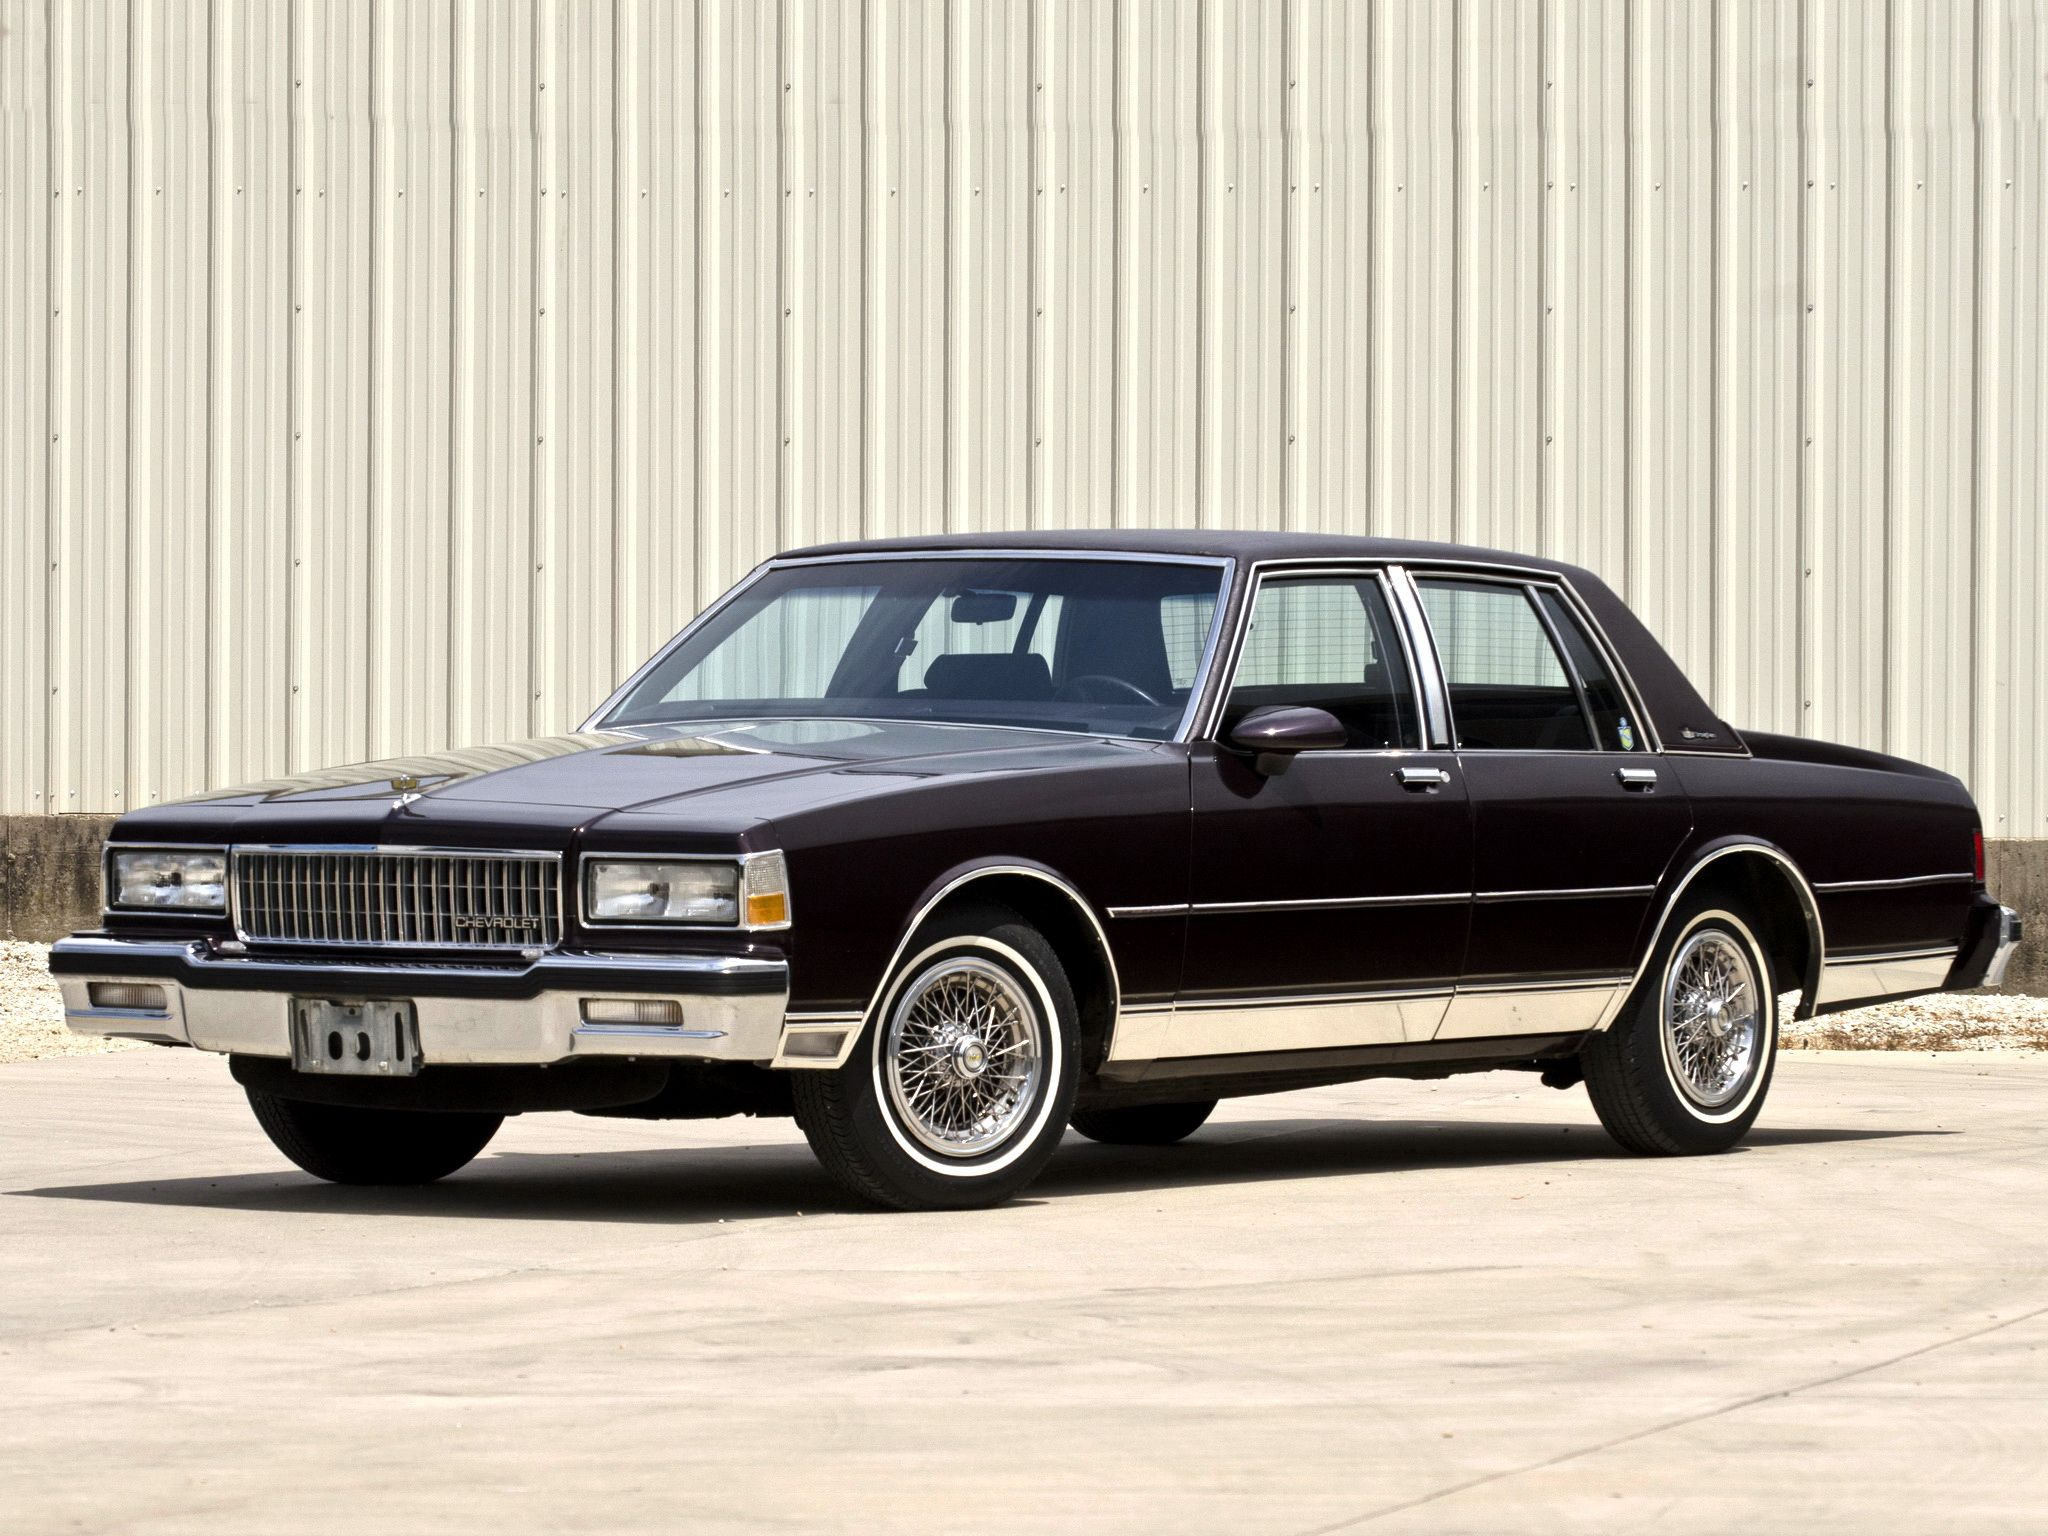 1987 1990 caprice classic chevrolet caprice the last full size cruiser pinterest. Black Bedroom Furniture Sets. Home Design Ideas